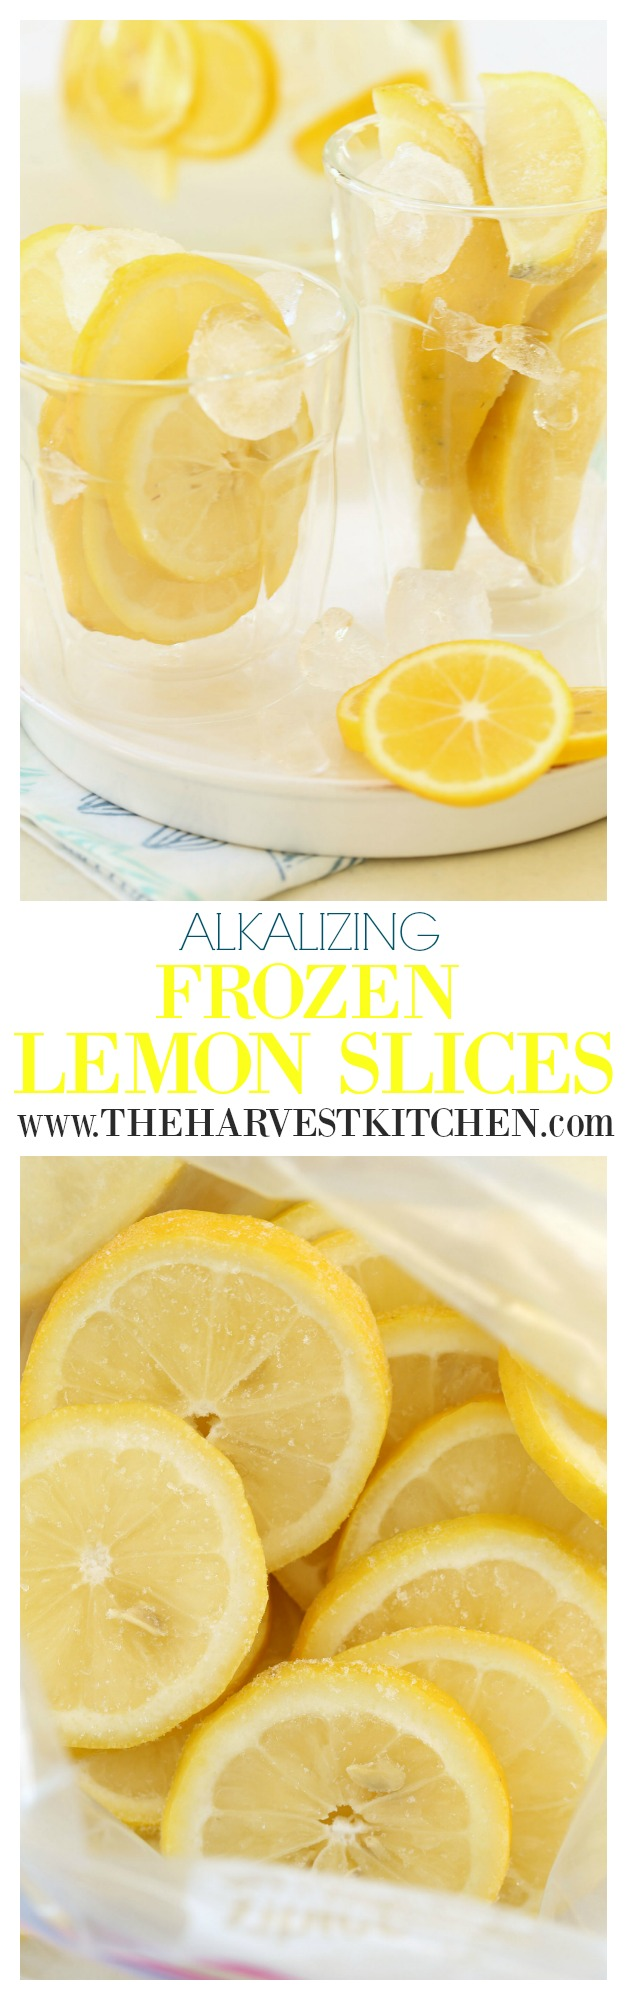 alkalizing-frozen-lemon-slices